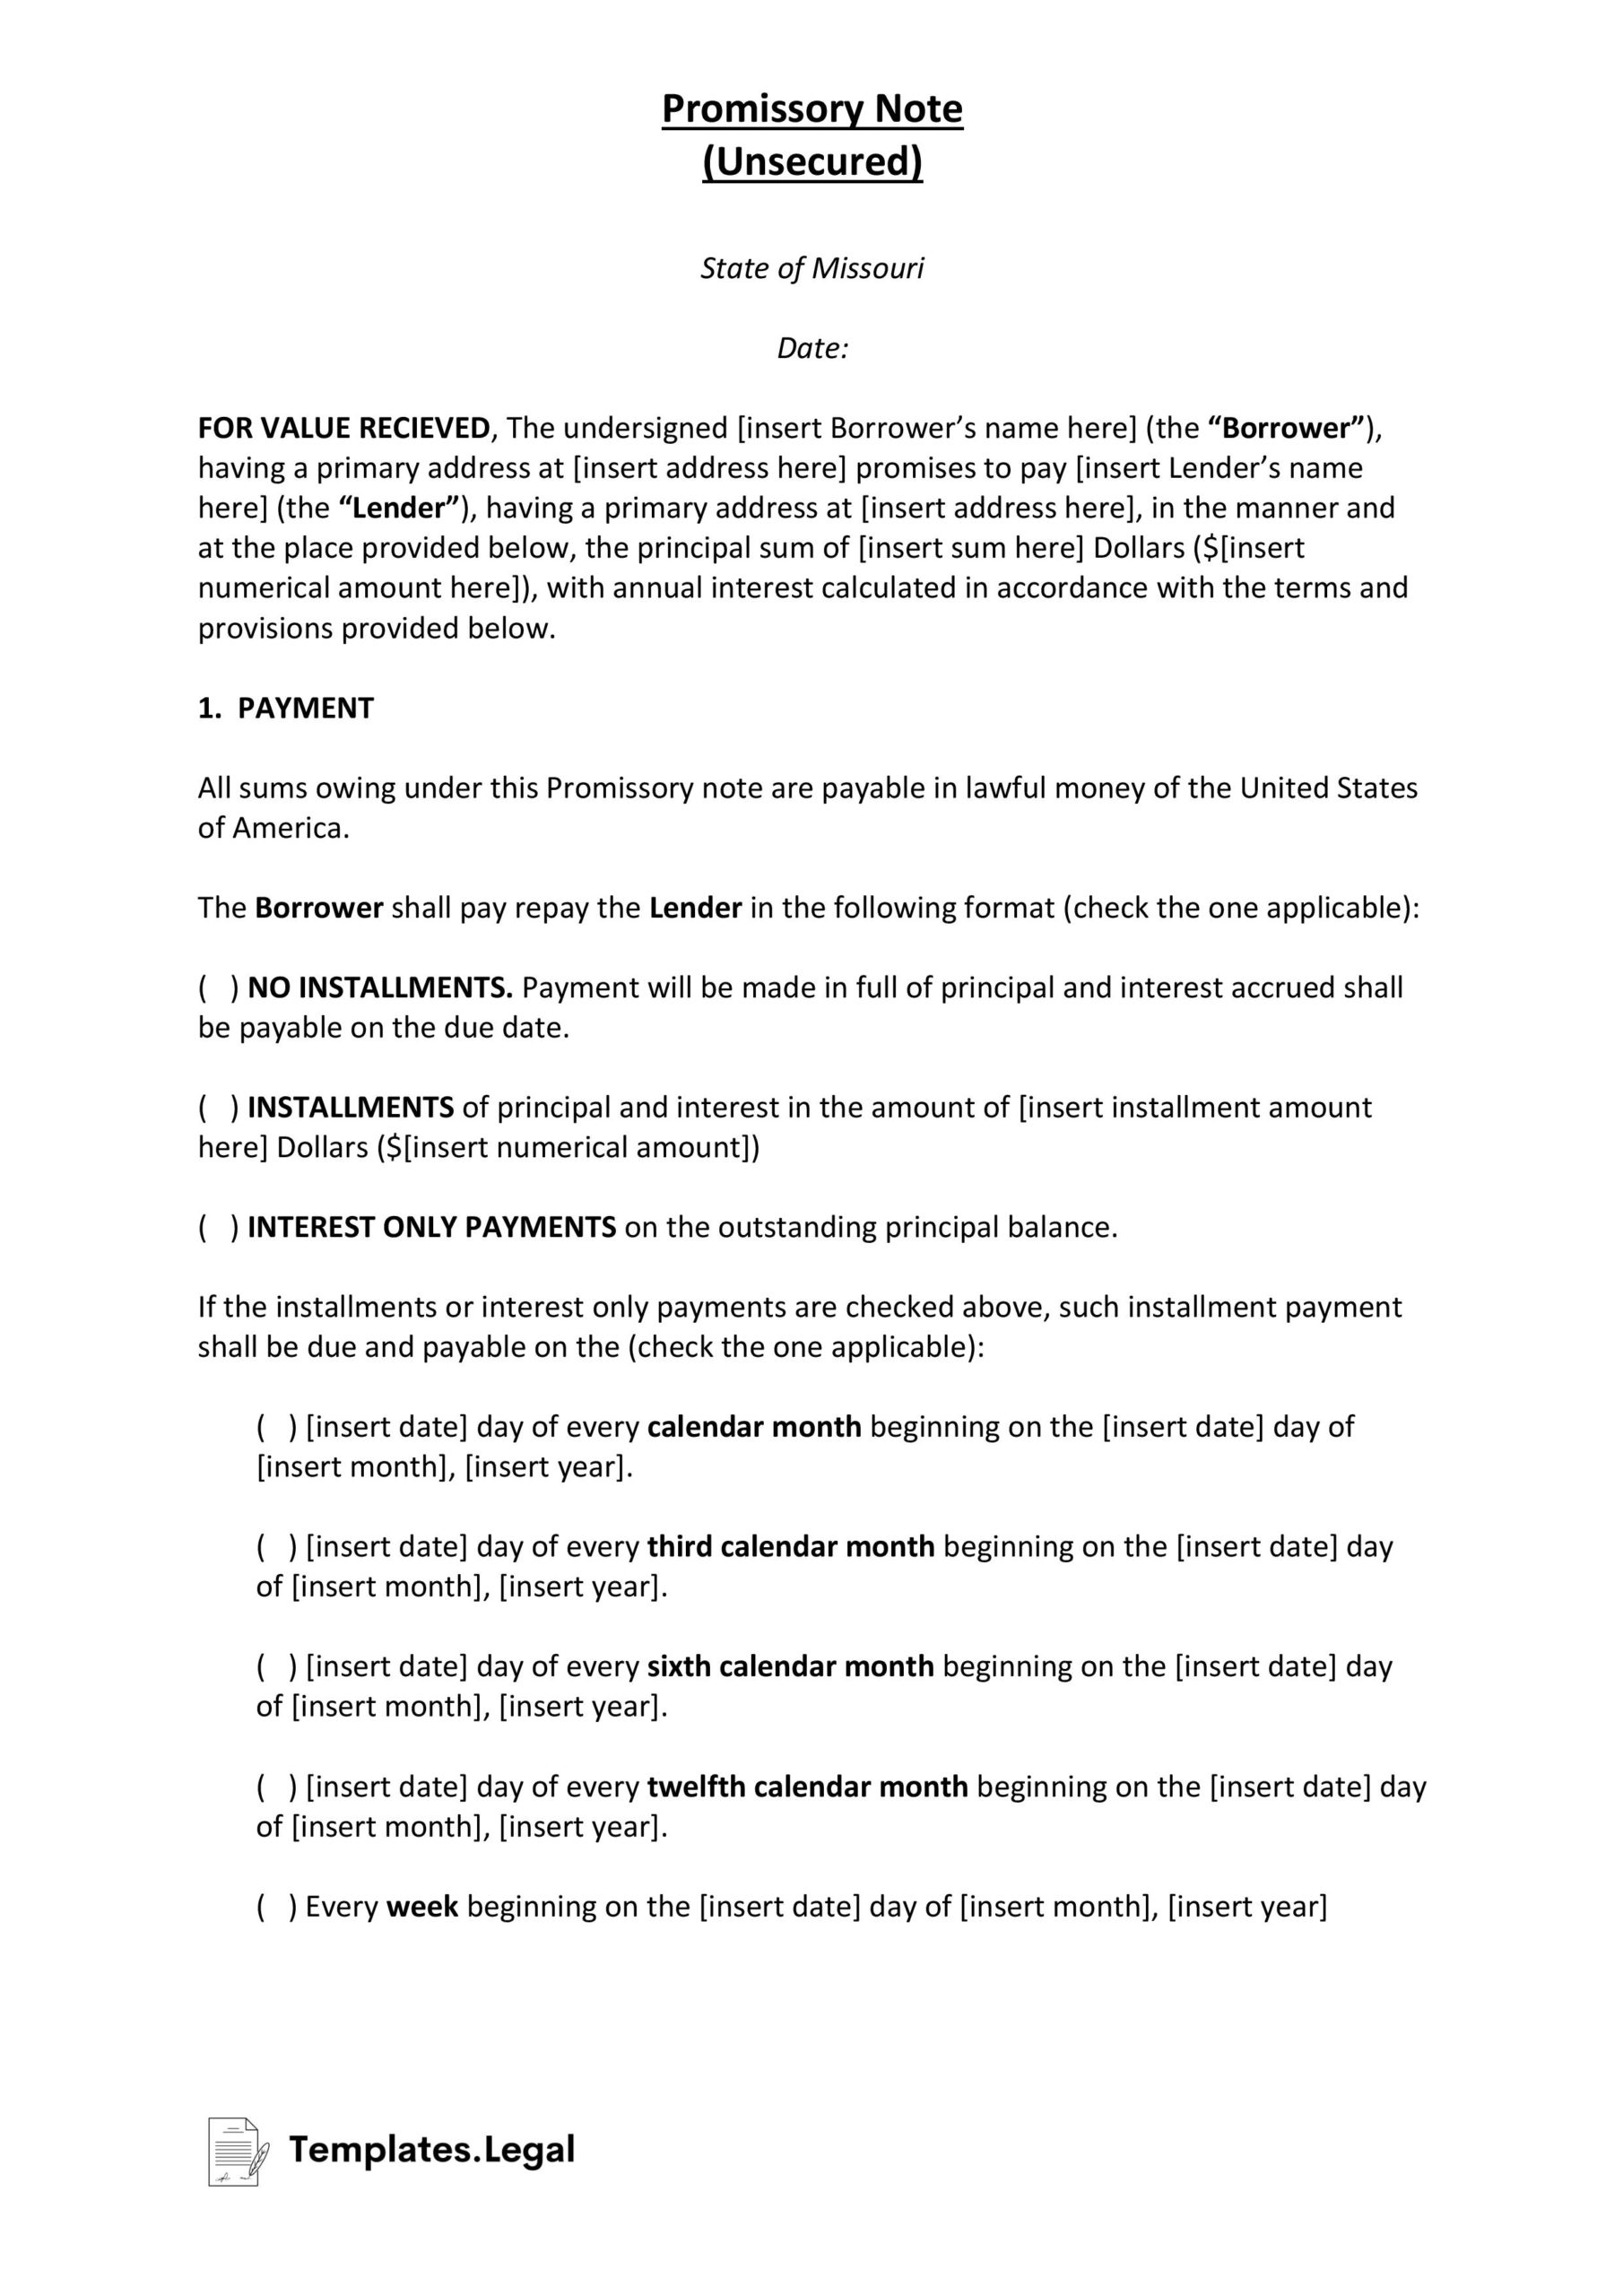 Missouri Unsecured Promissory Note - Templates.Legal